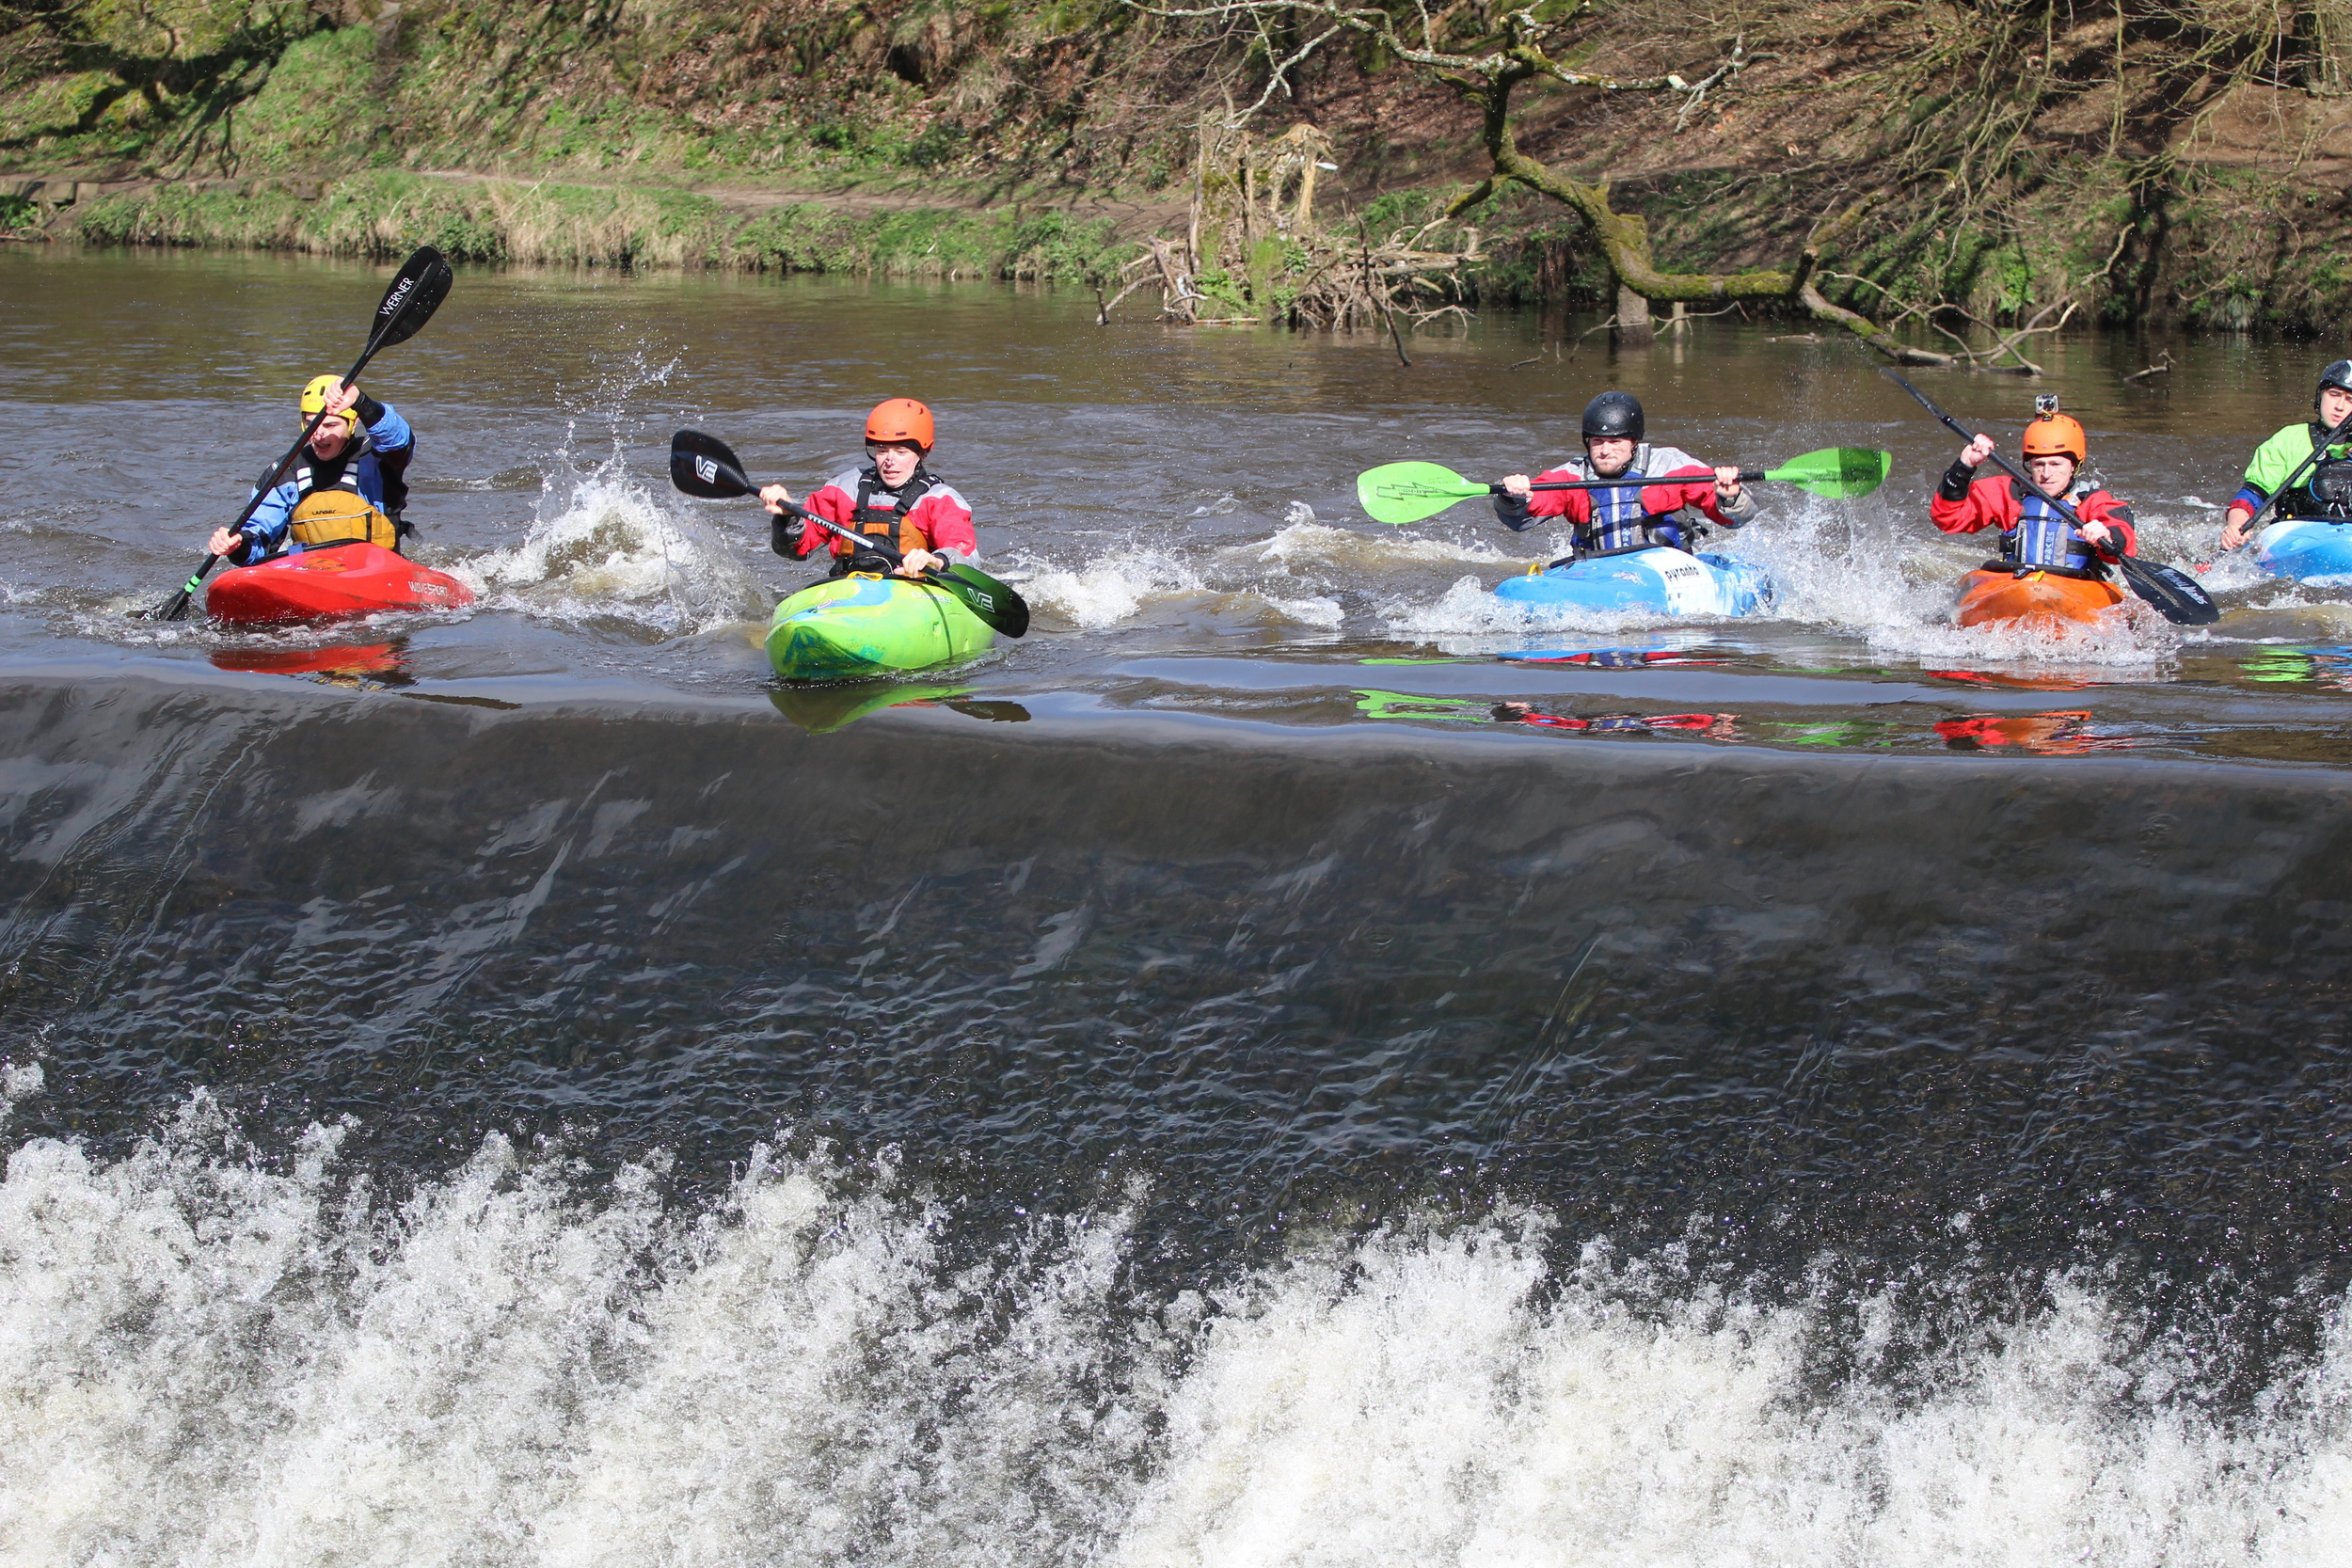 The pro category set off on the boater cross